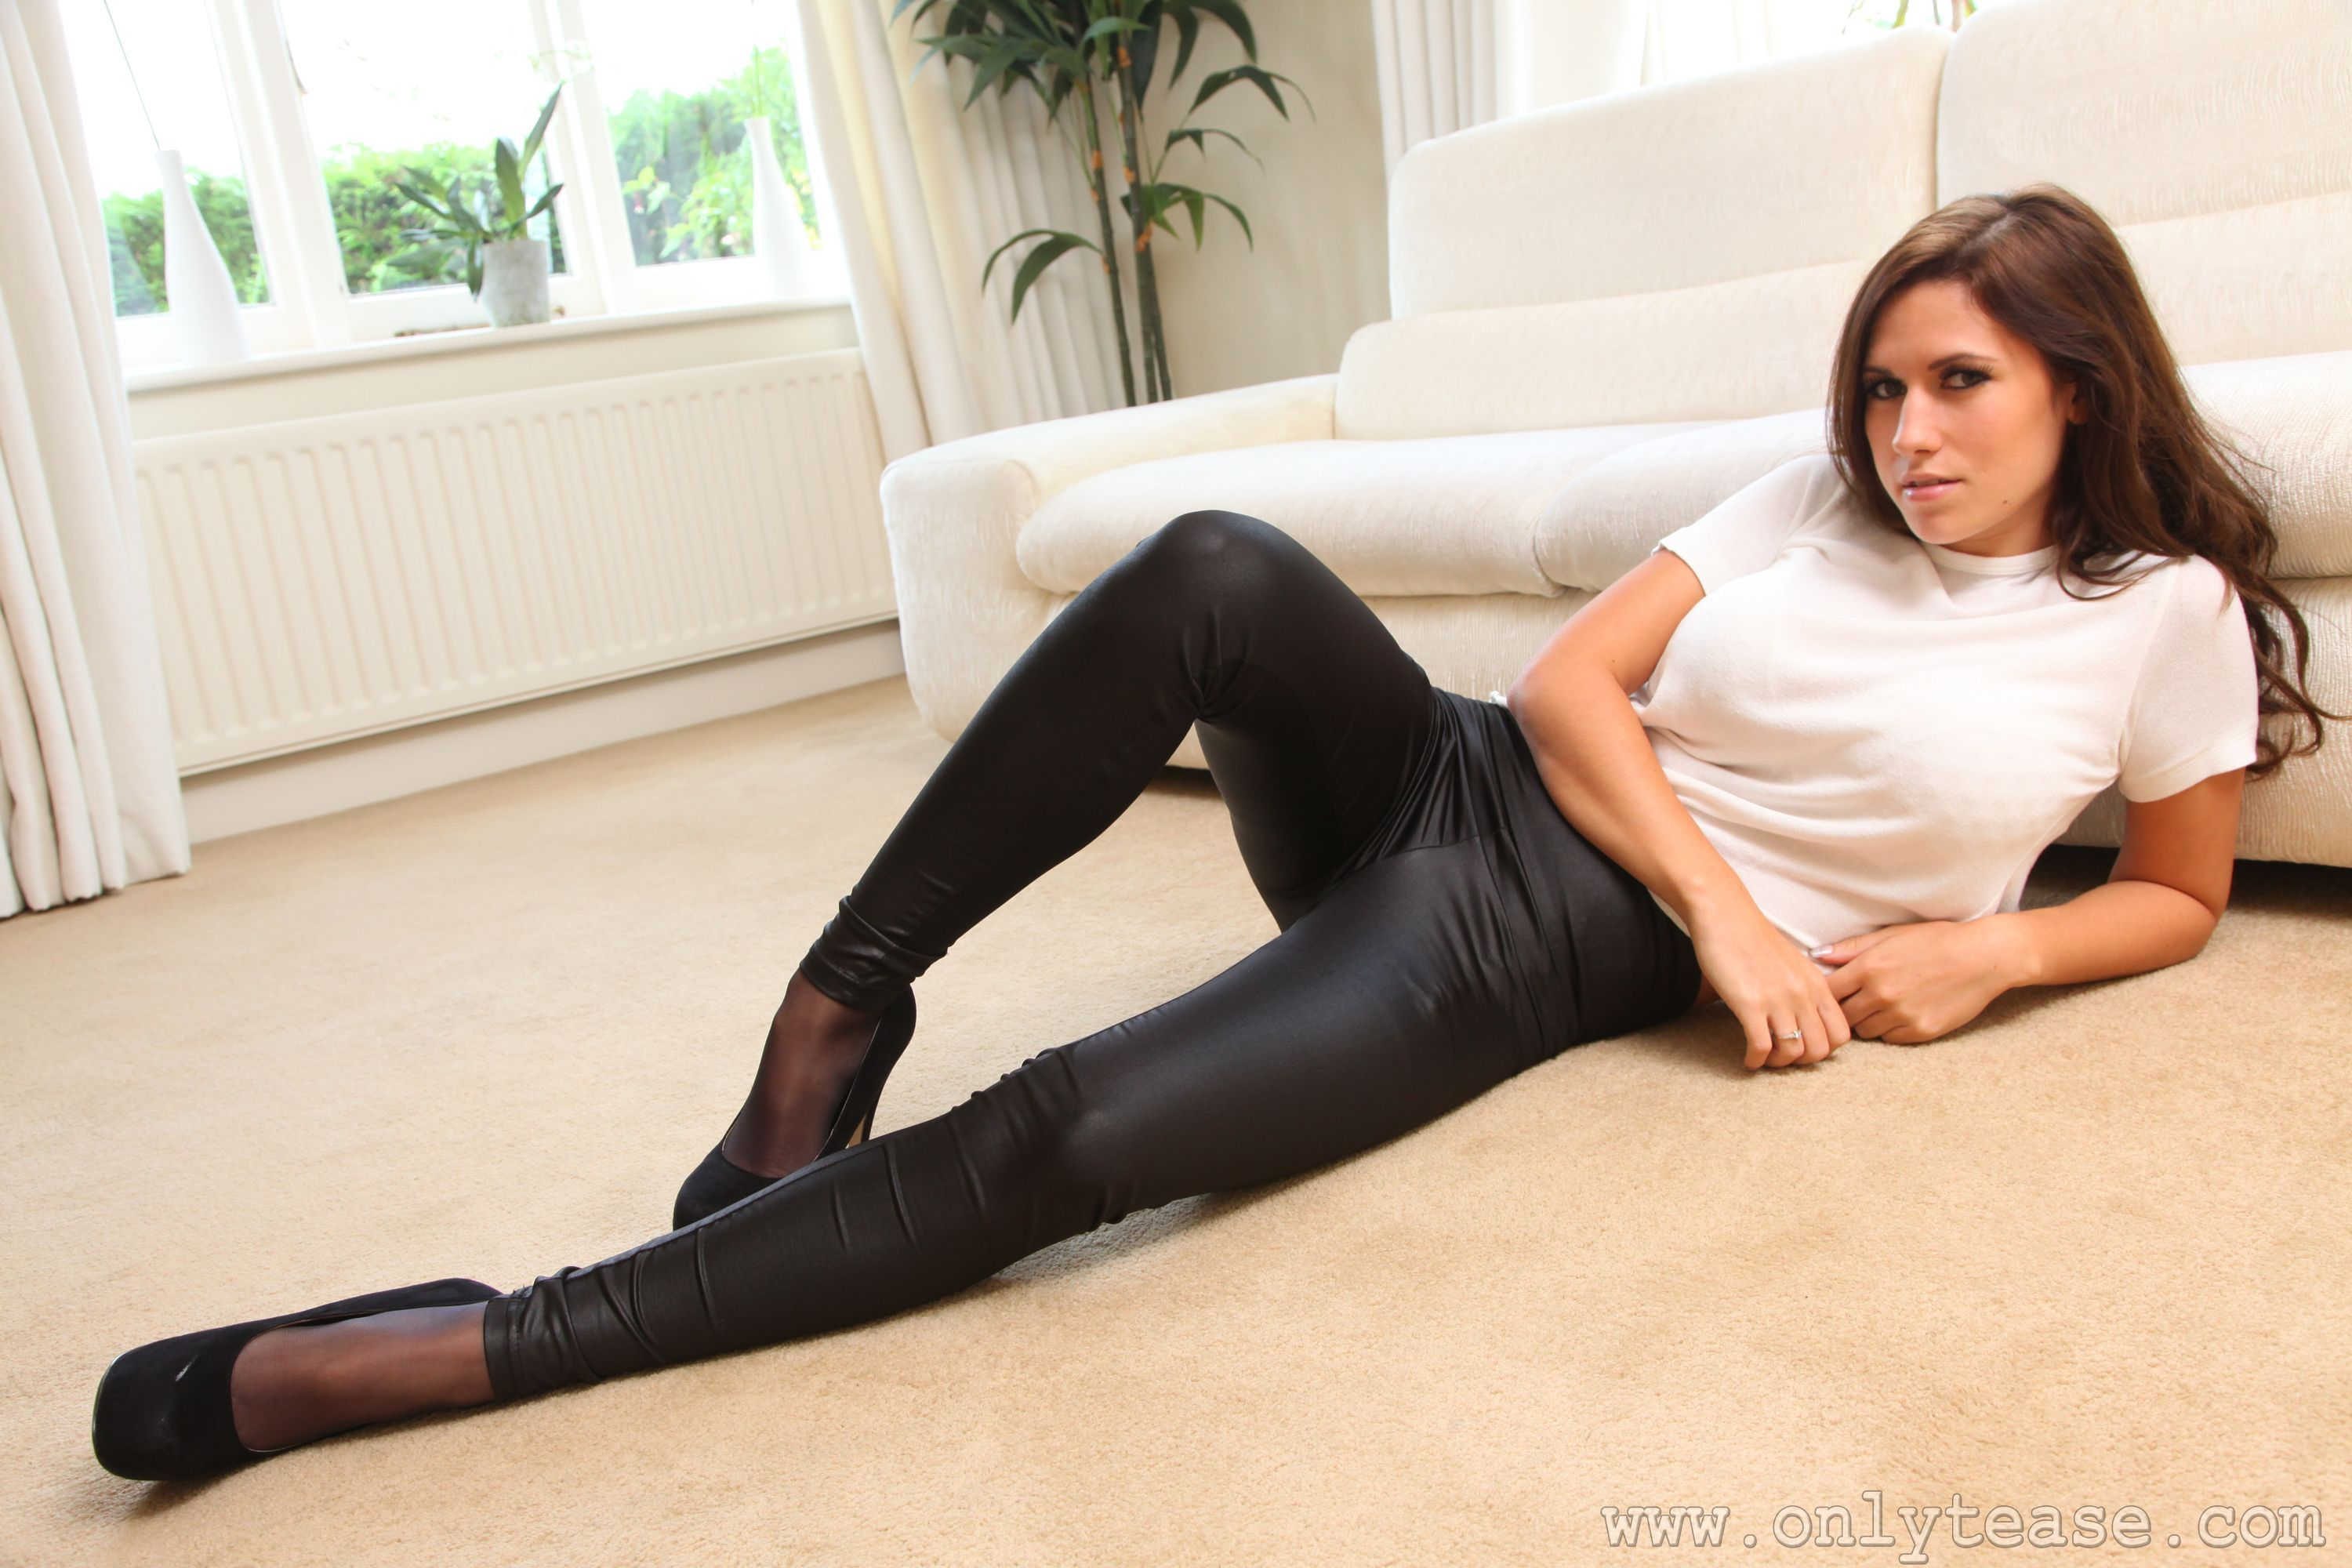 Amy Knights Pics amy knights   hottest models, leather pants, model